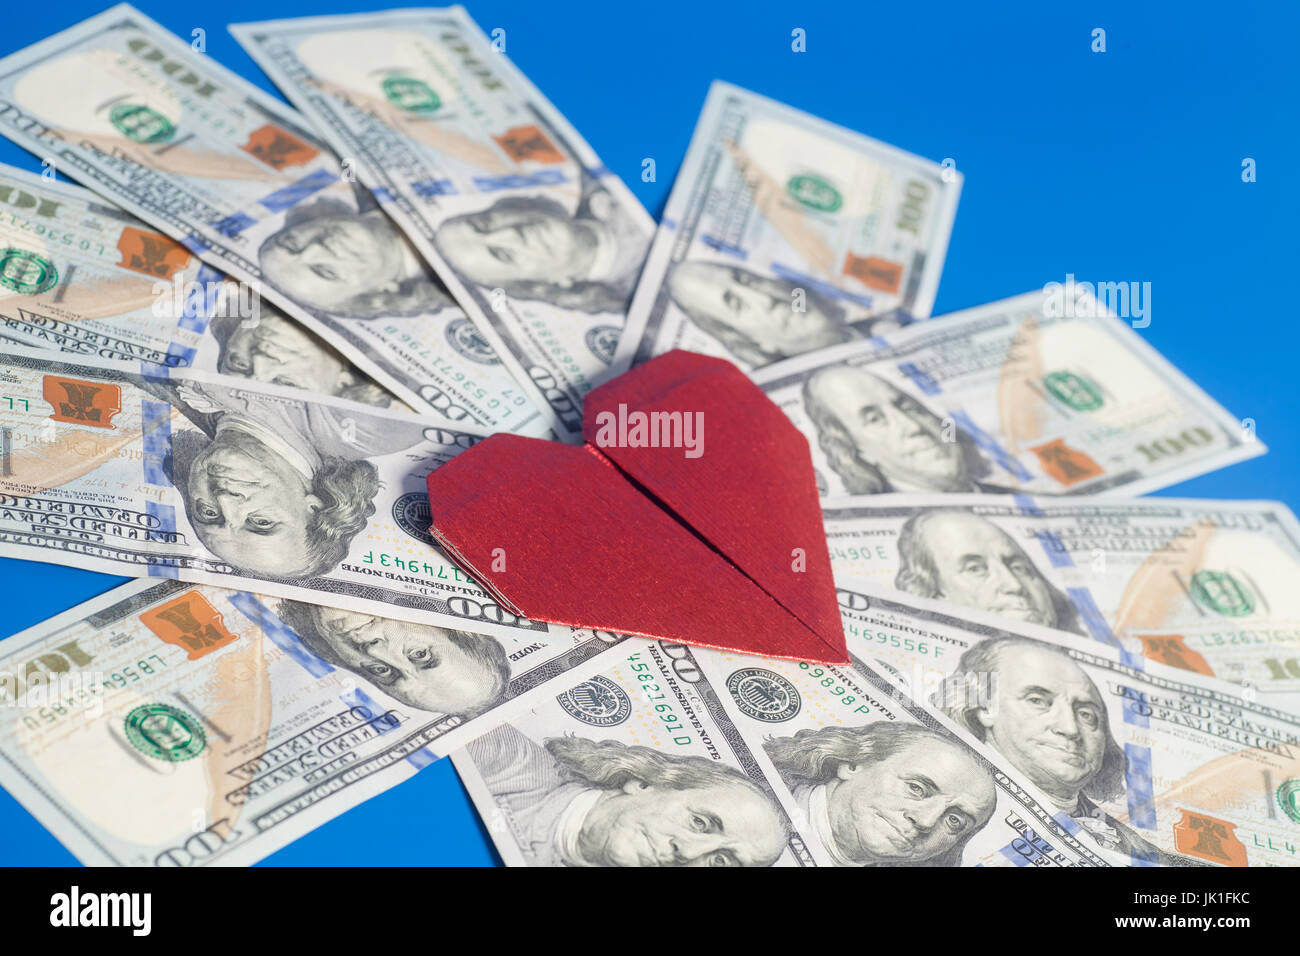 Red paper heart origami and dollar bills on blue background stock red paper heart origami and dollar bills on blue background jeuxipadfo Images